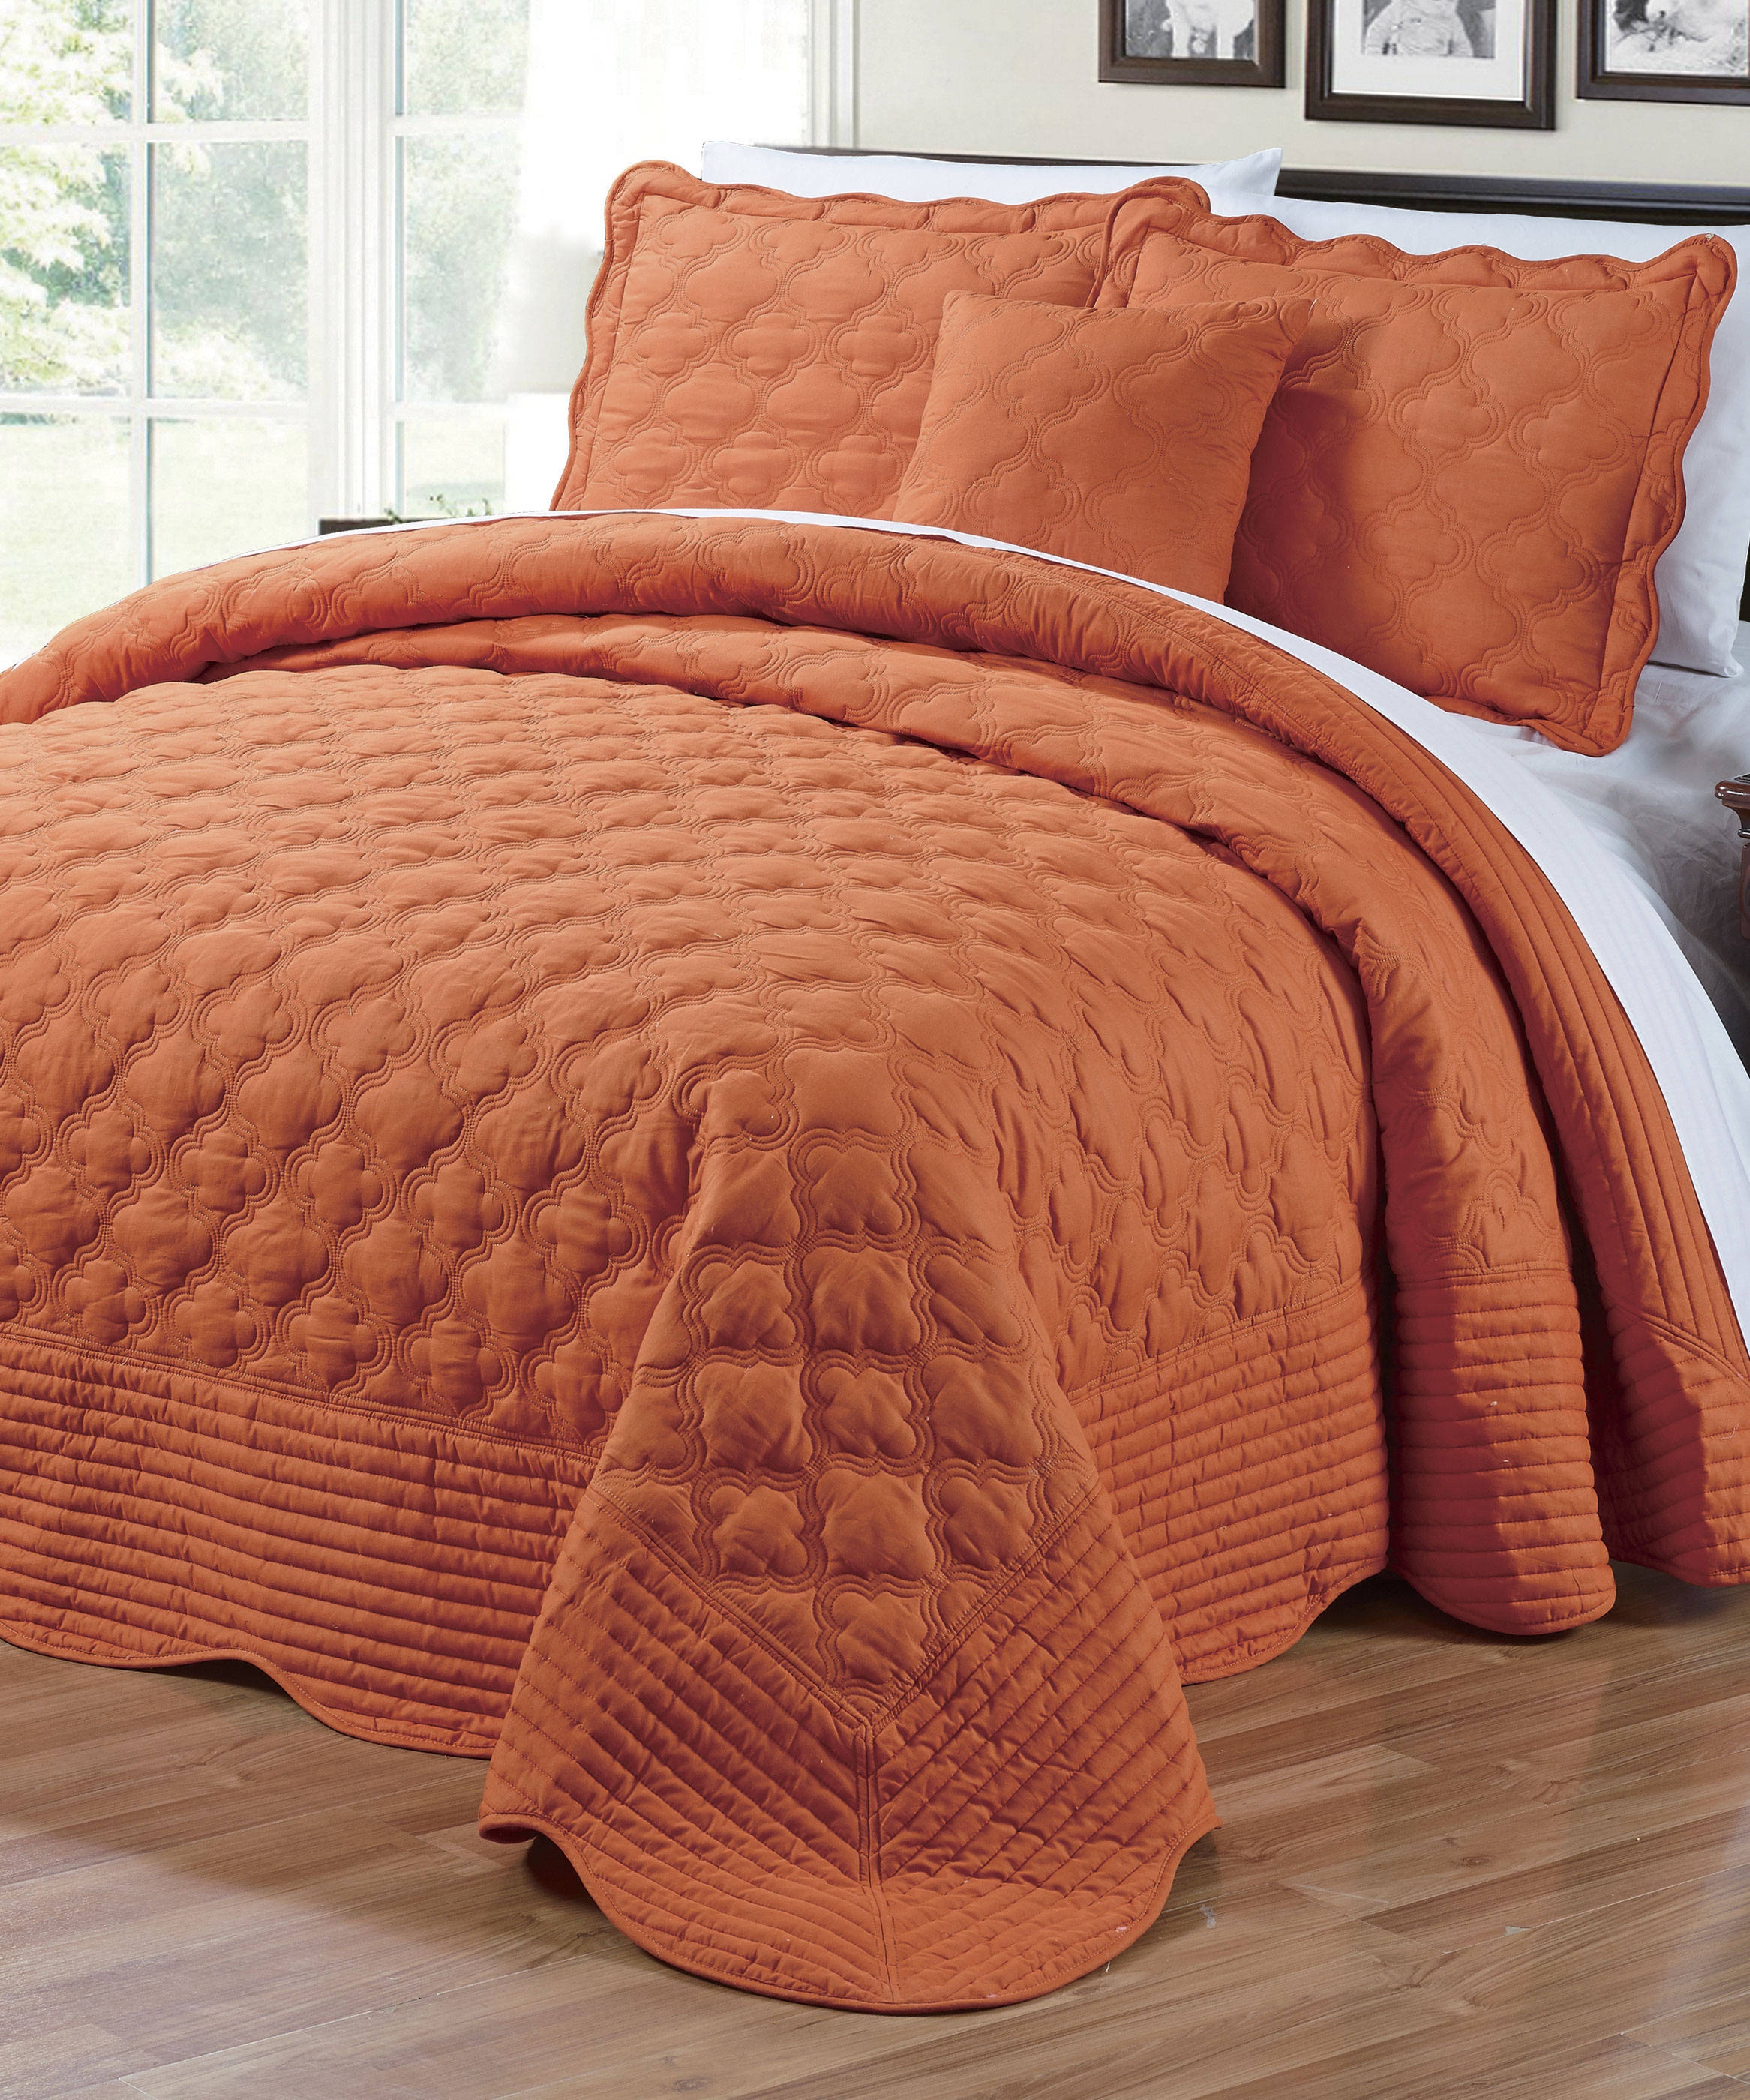 Quilted Cotton 4 Piece Bedspread Set Bnf Home Inc